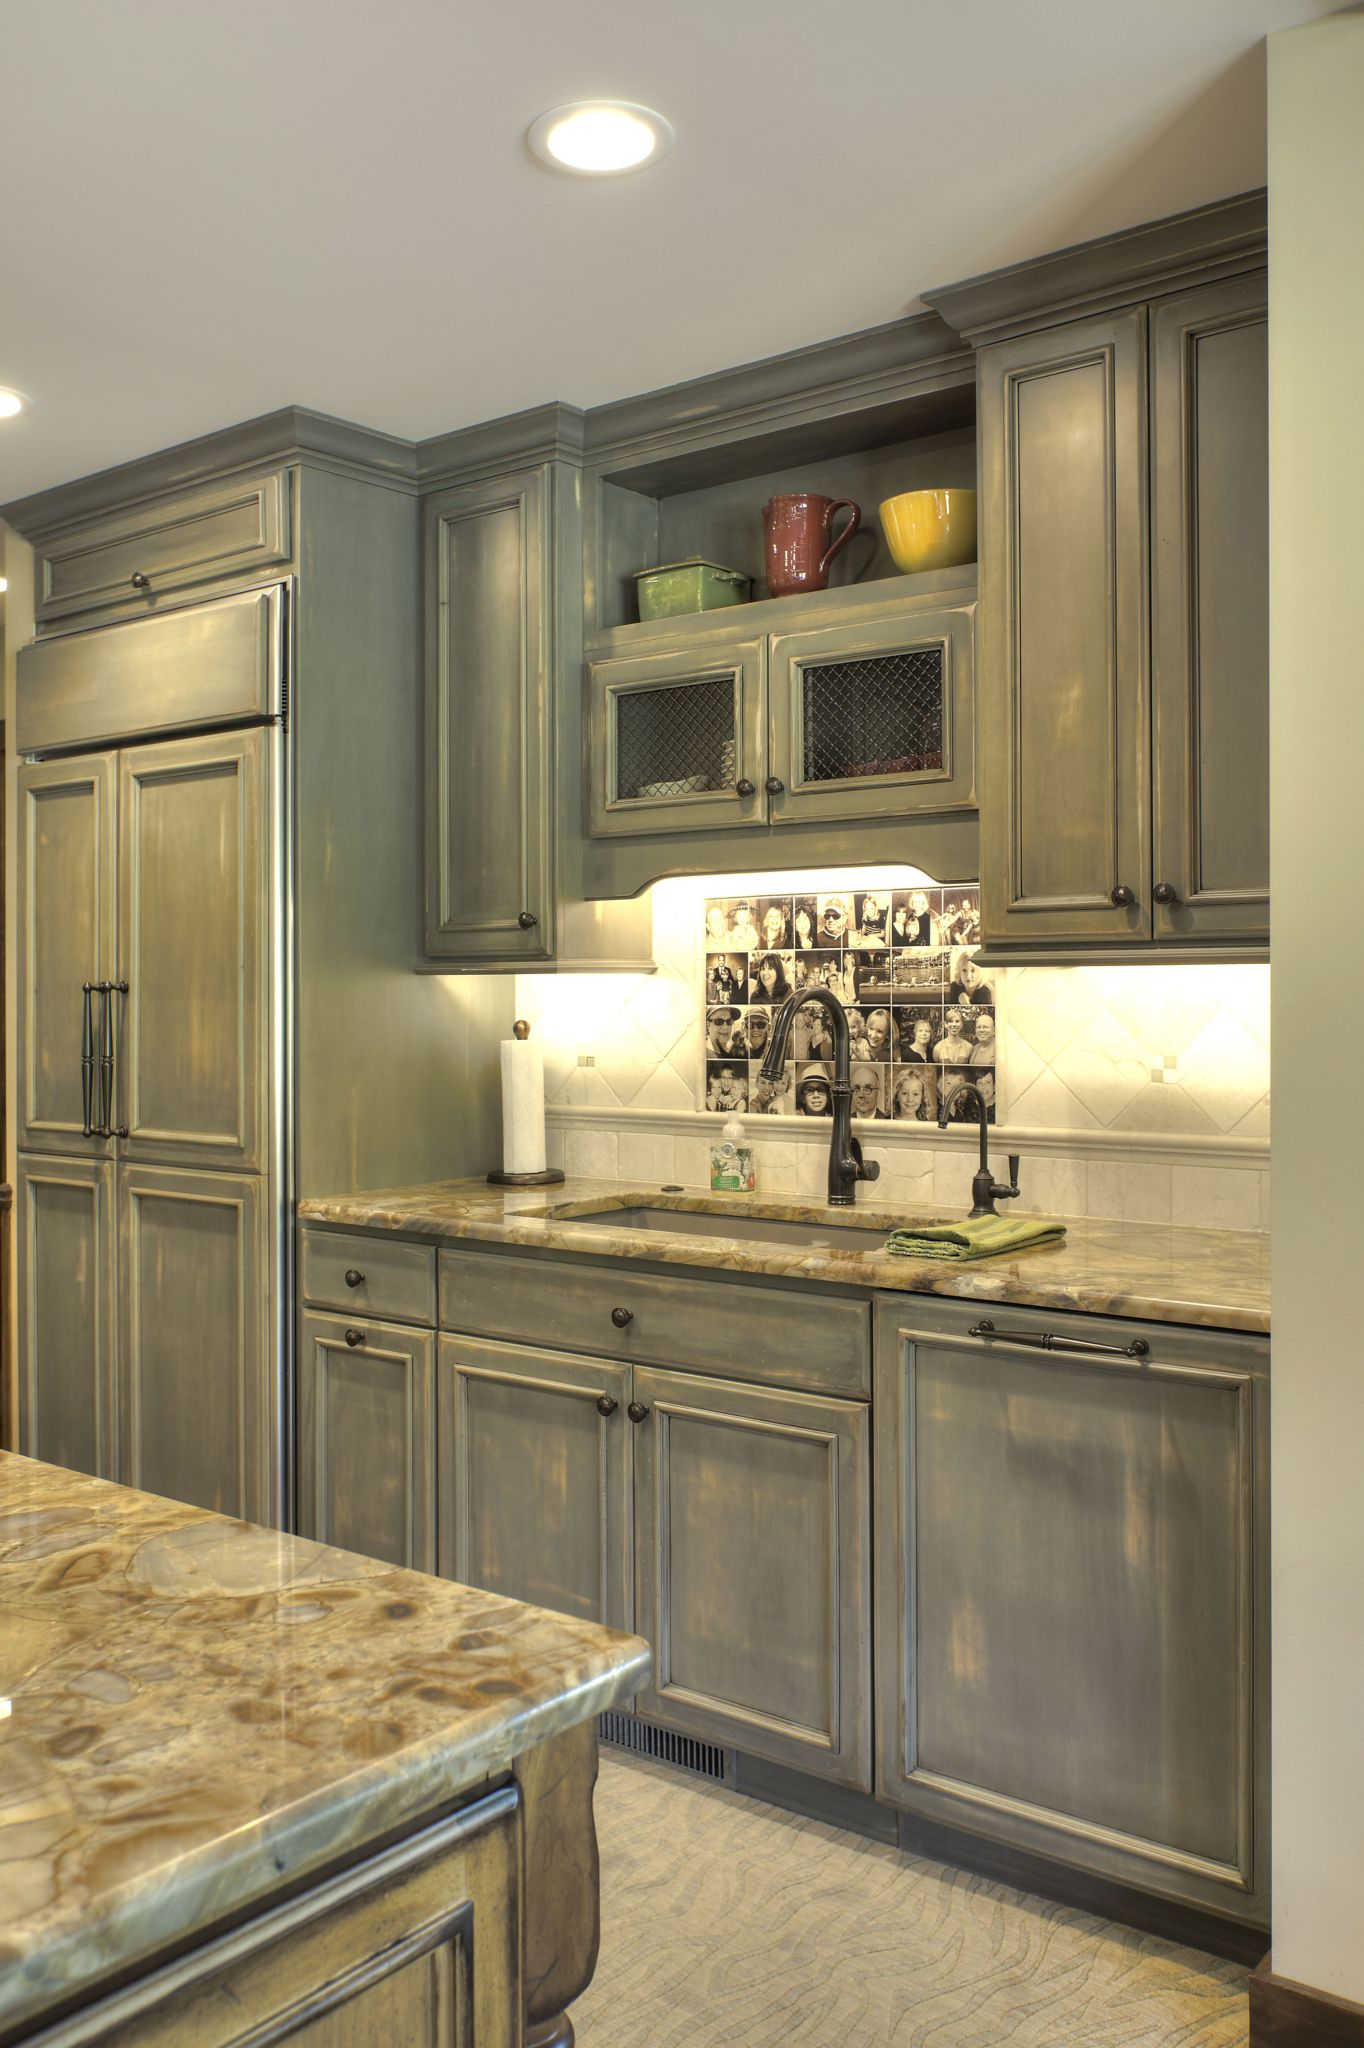 A kitchen remodel in Bellaire Michigan was redesigned from head to